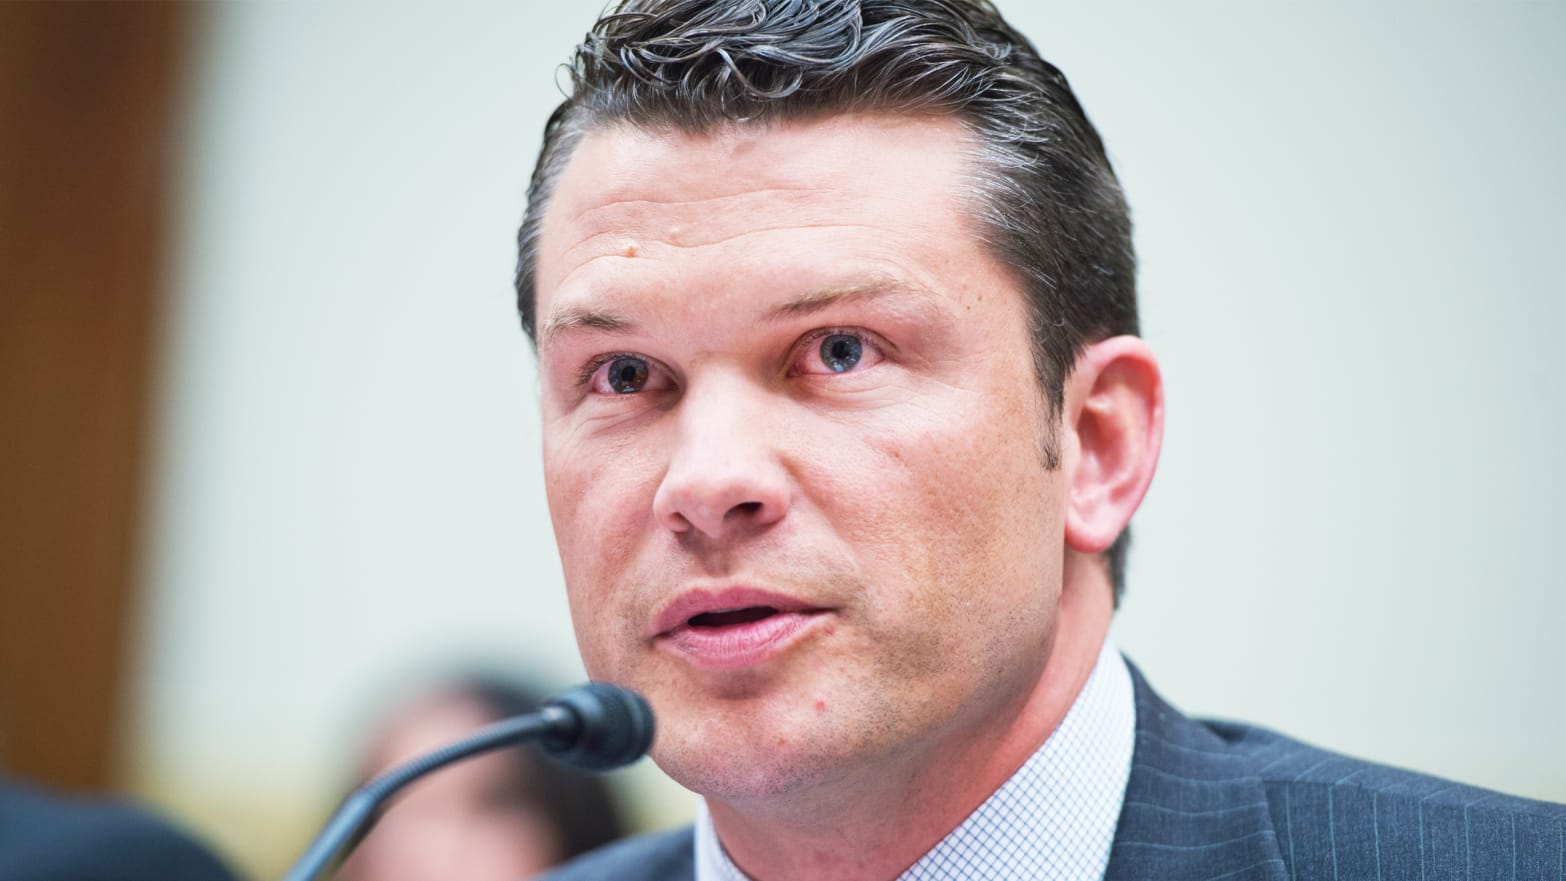 'Fox & Friends' Host Pete Hegseth Privately Lobbied Trump to Pardon Accused War Criminals